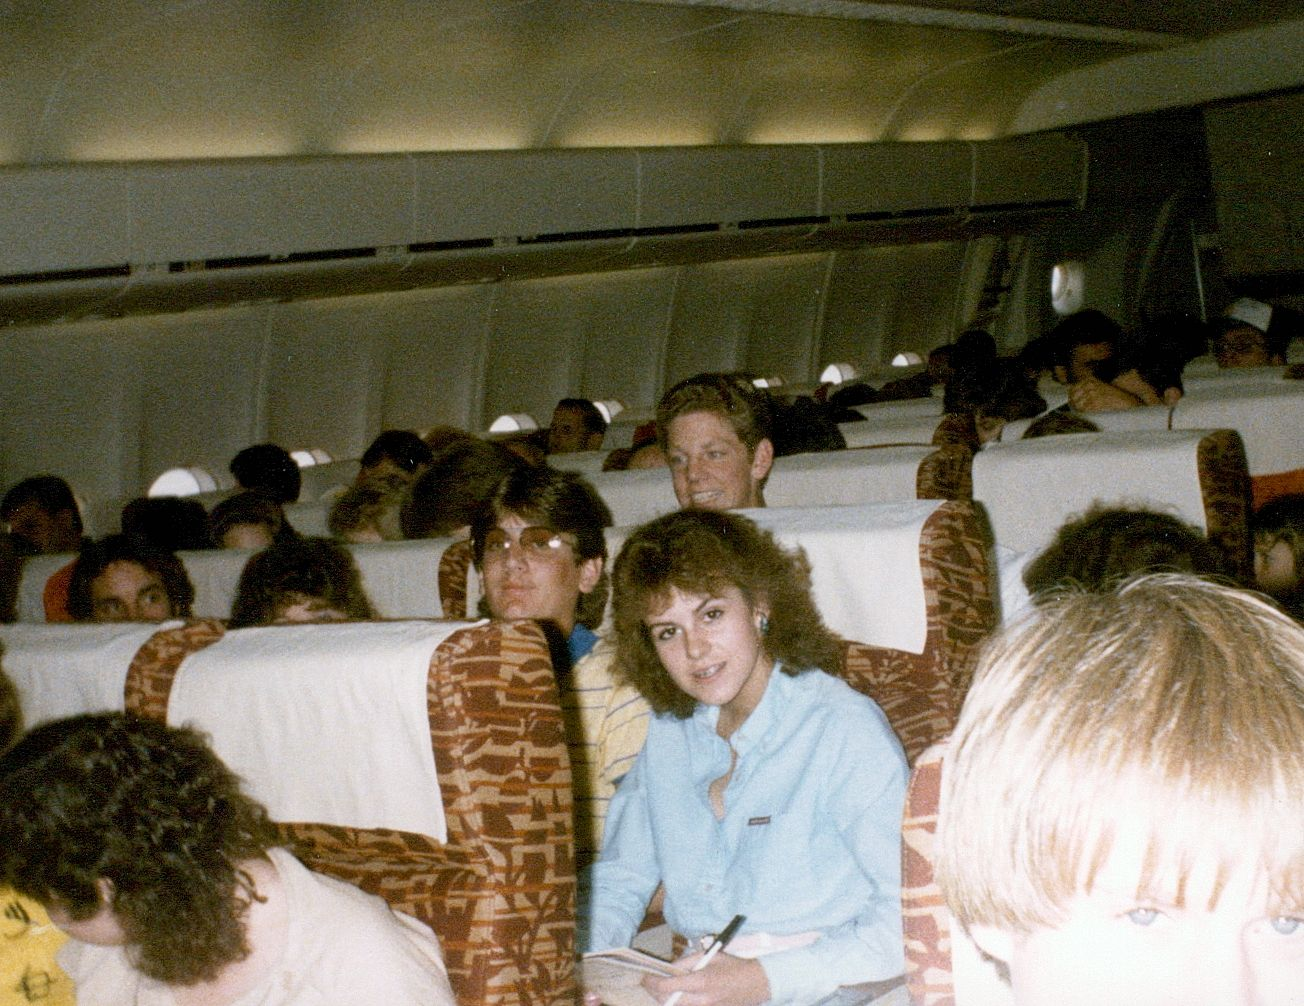 Picture of people on a plane